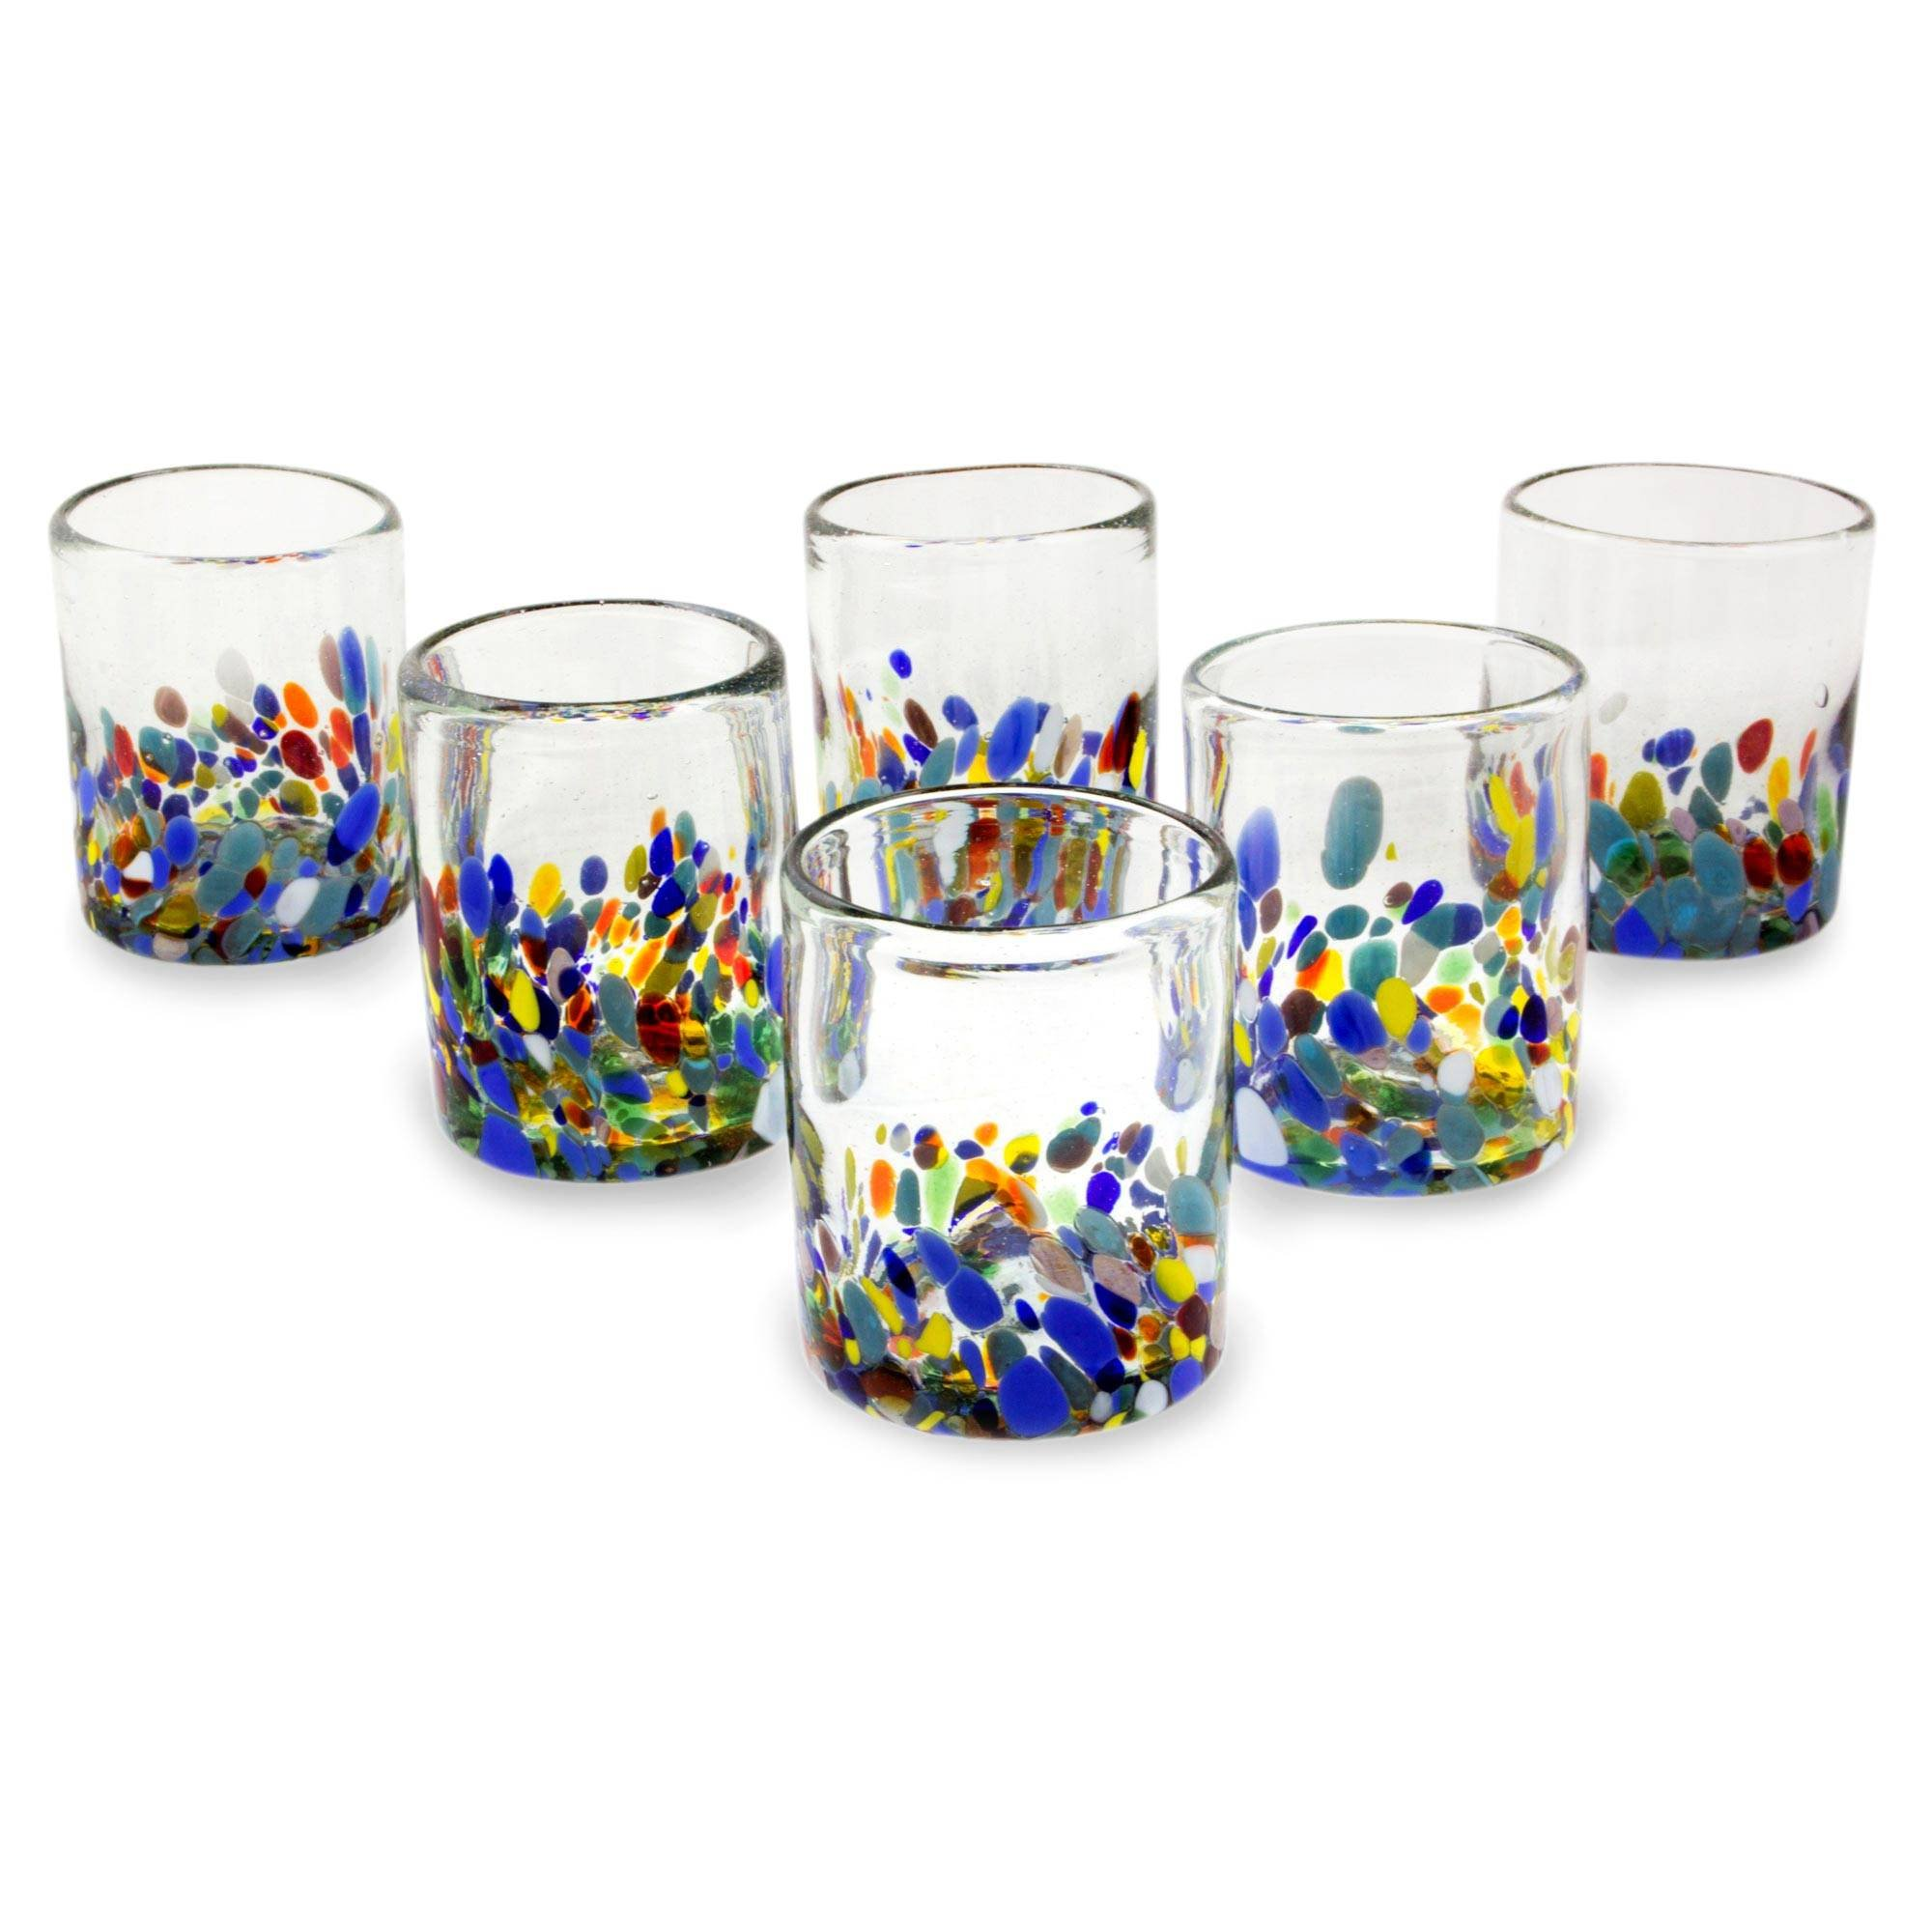 NOVICA Hand Blown Multicolor Recycled Glass Tumbler Glasses, 10 oz. 'Confetti Festival' (set of 6) by NOVICA